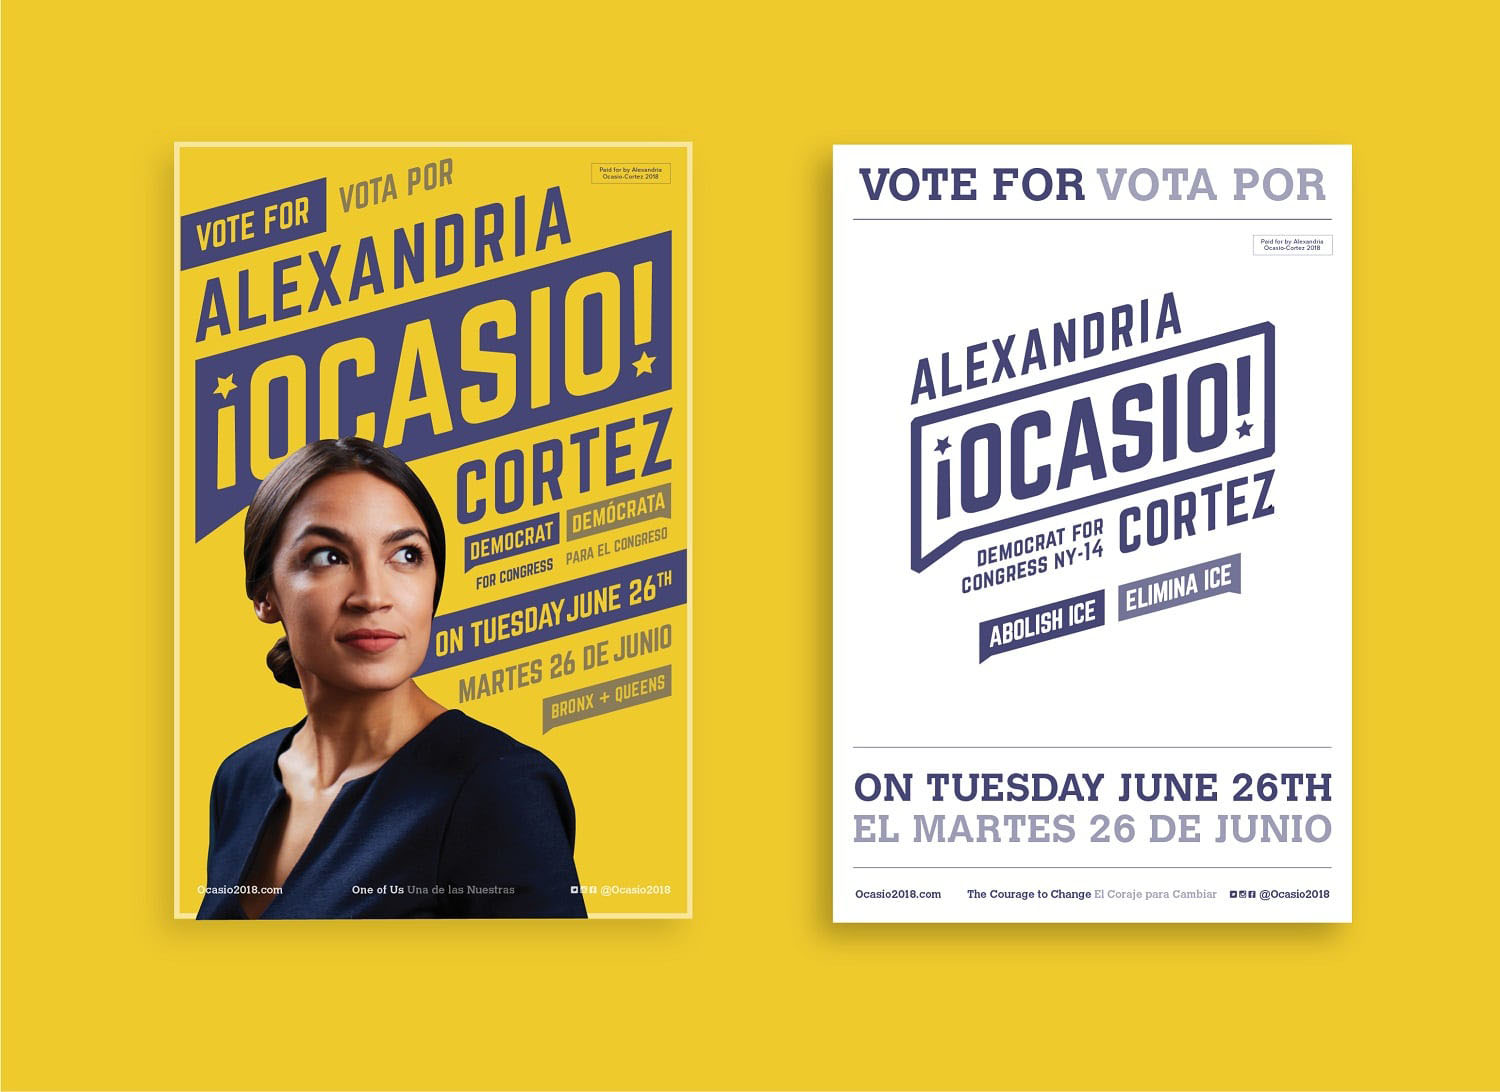 Ocasio Cortez Scored A Victory For Well Designed